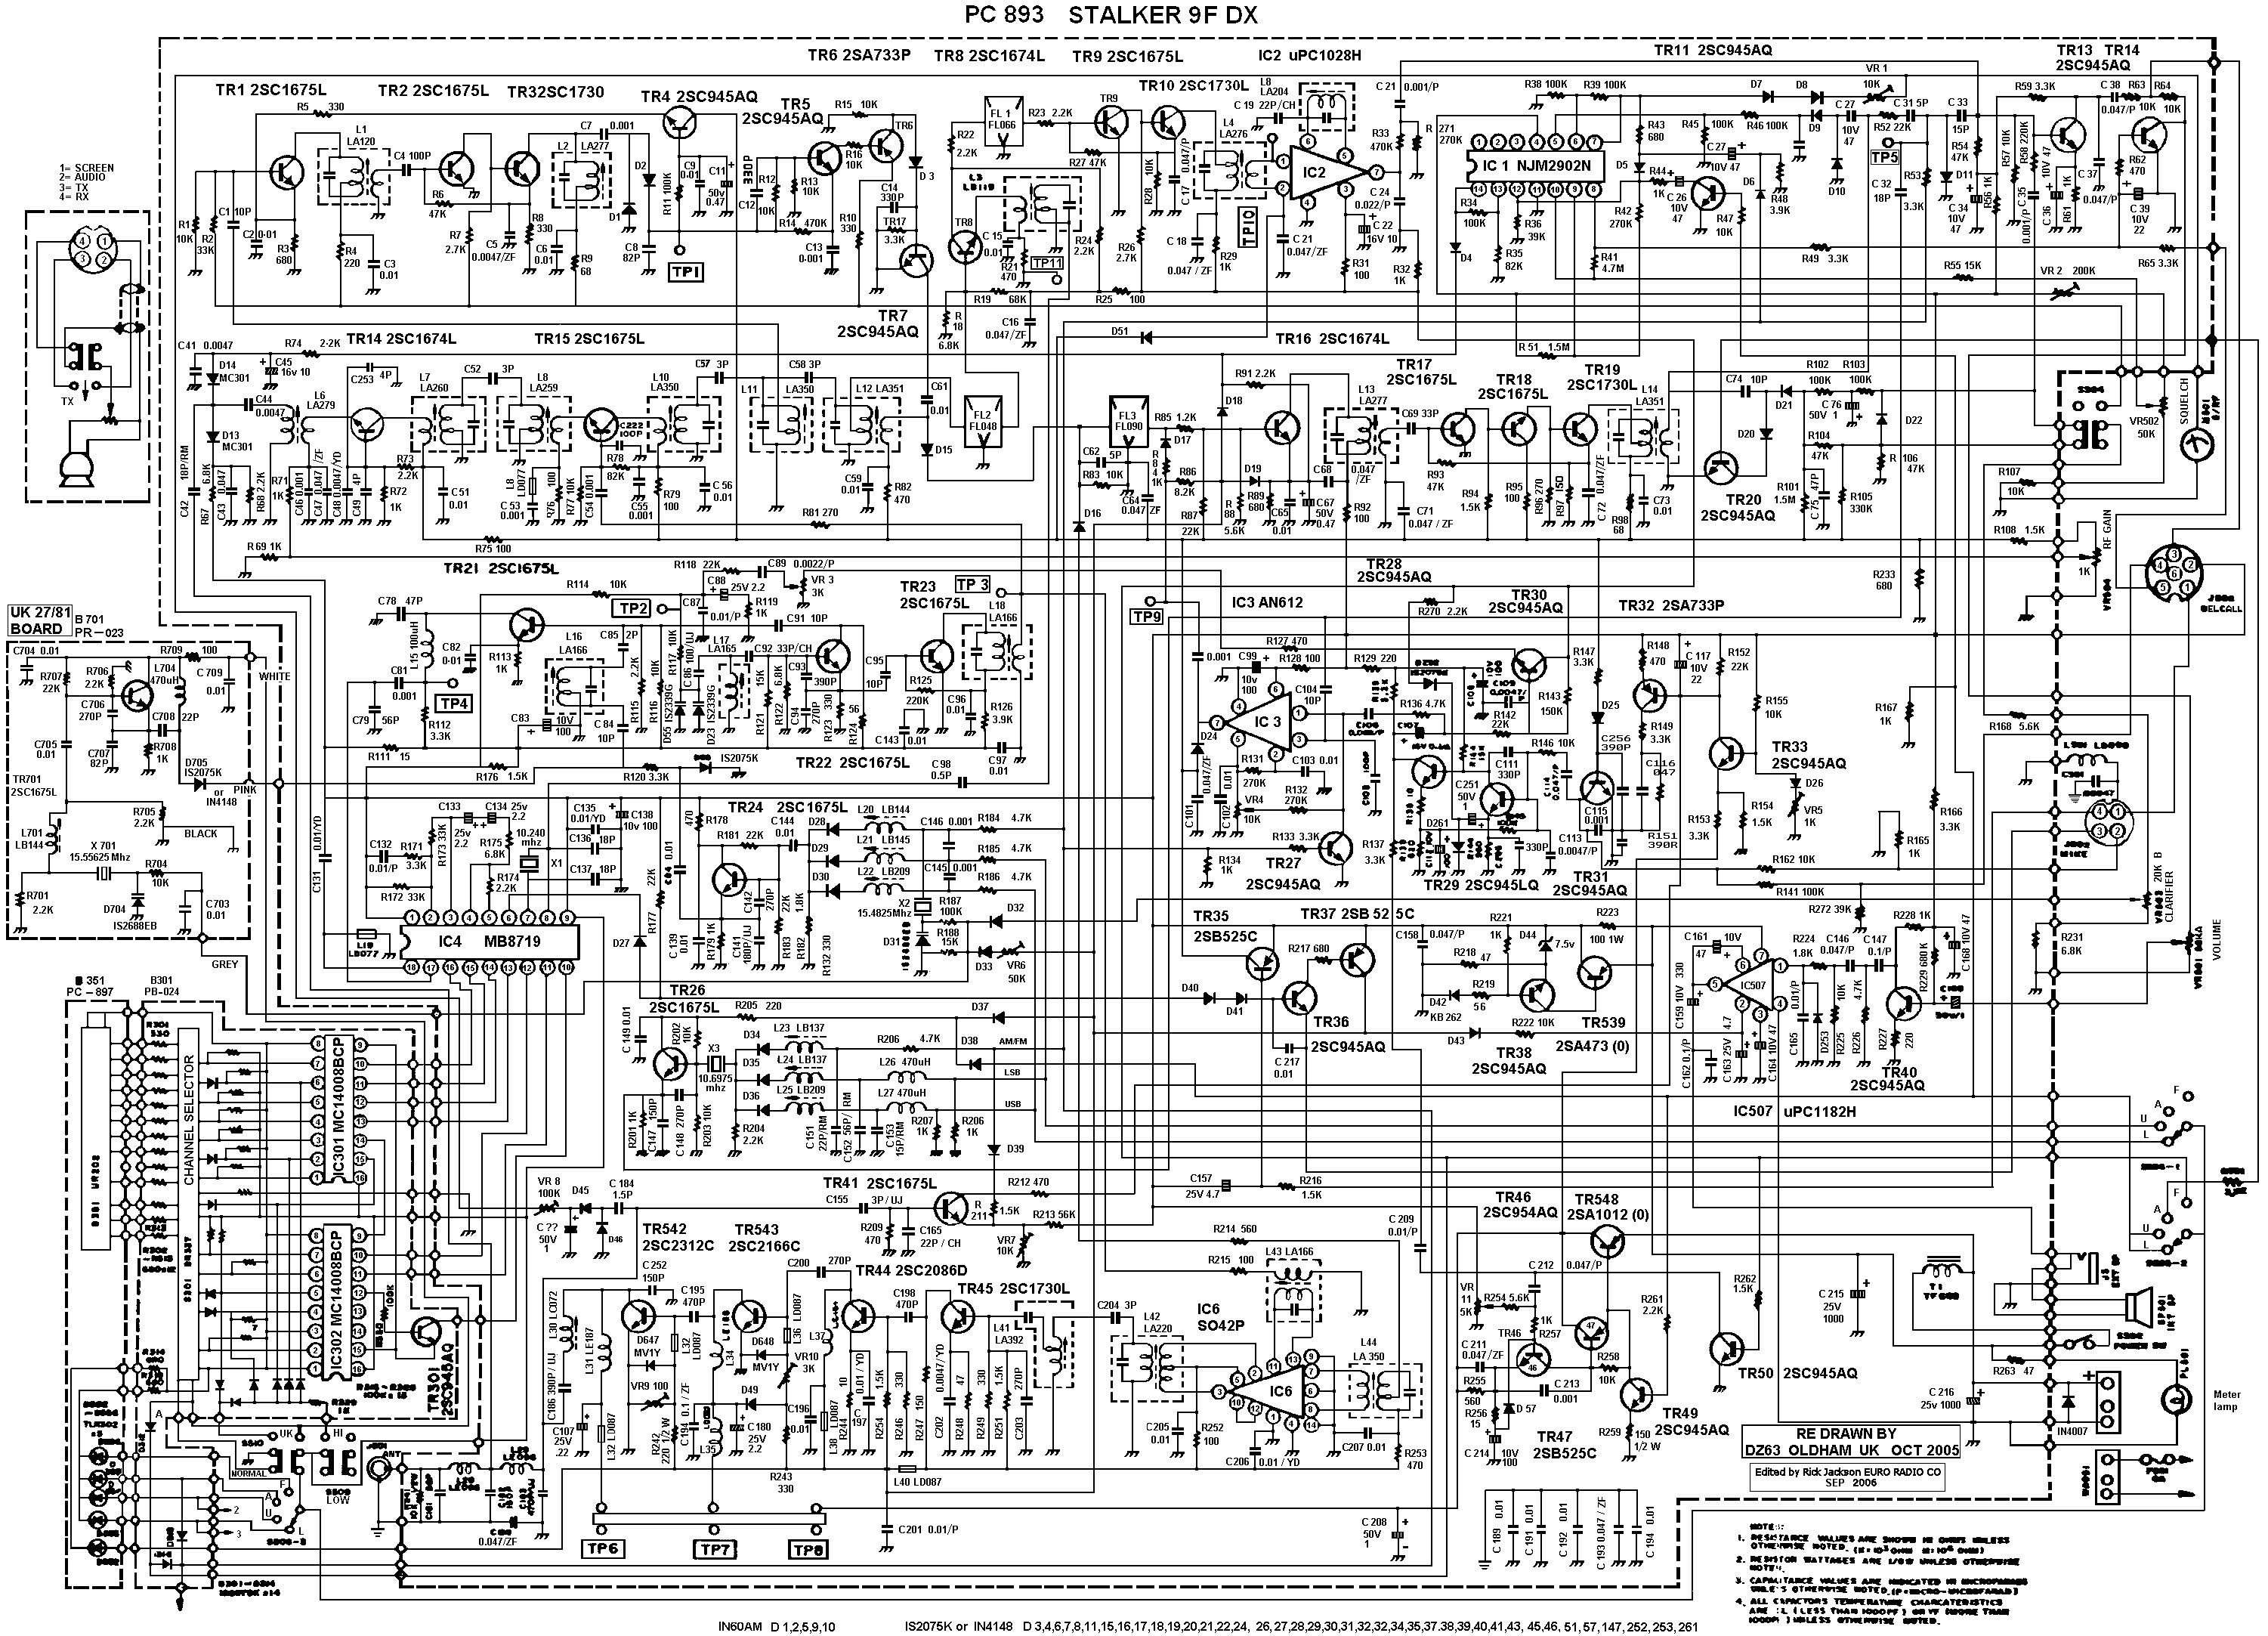 381f91856c8e3d5a8624ba977cca4625 image result for circuit diagram client_iot_平面 pinterest circuit diagram pdf at gsmportal.co